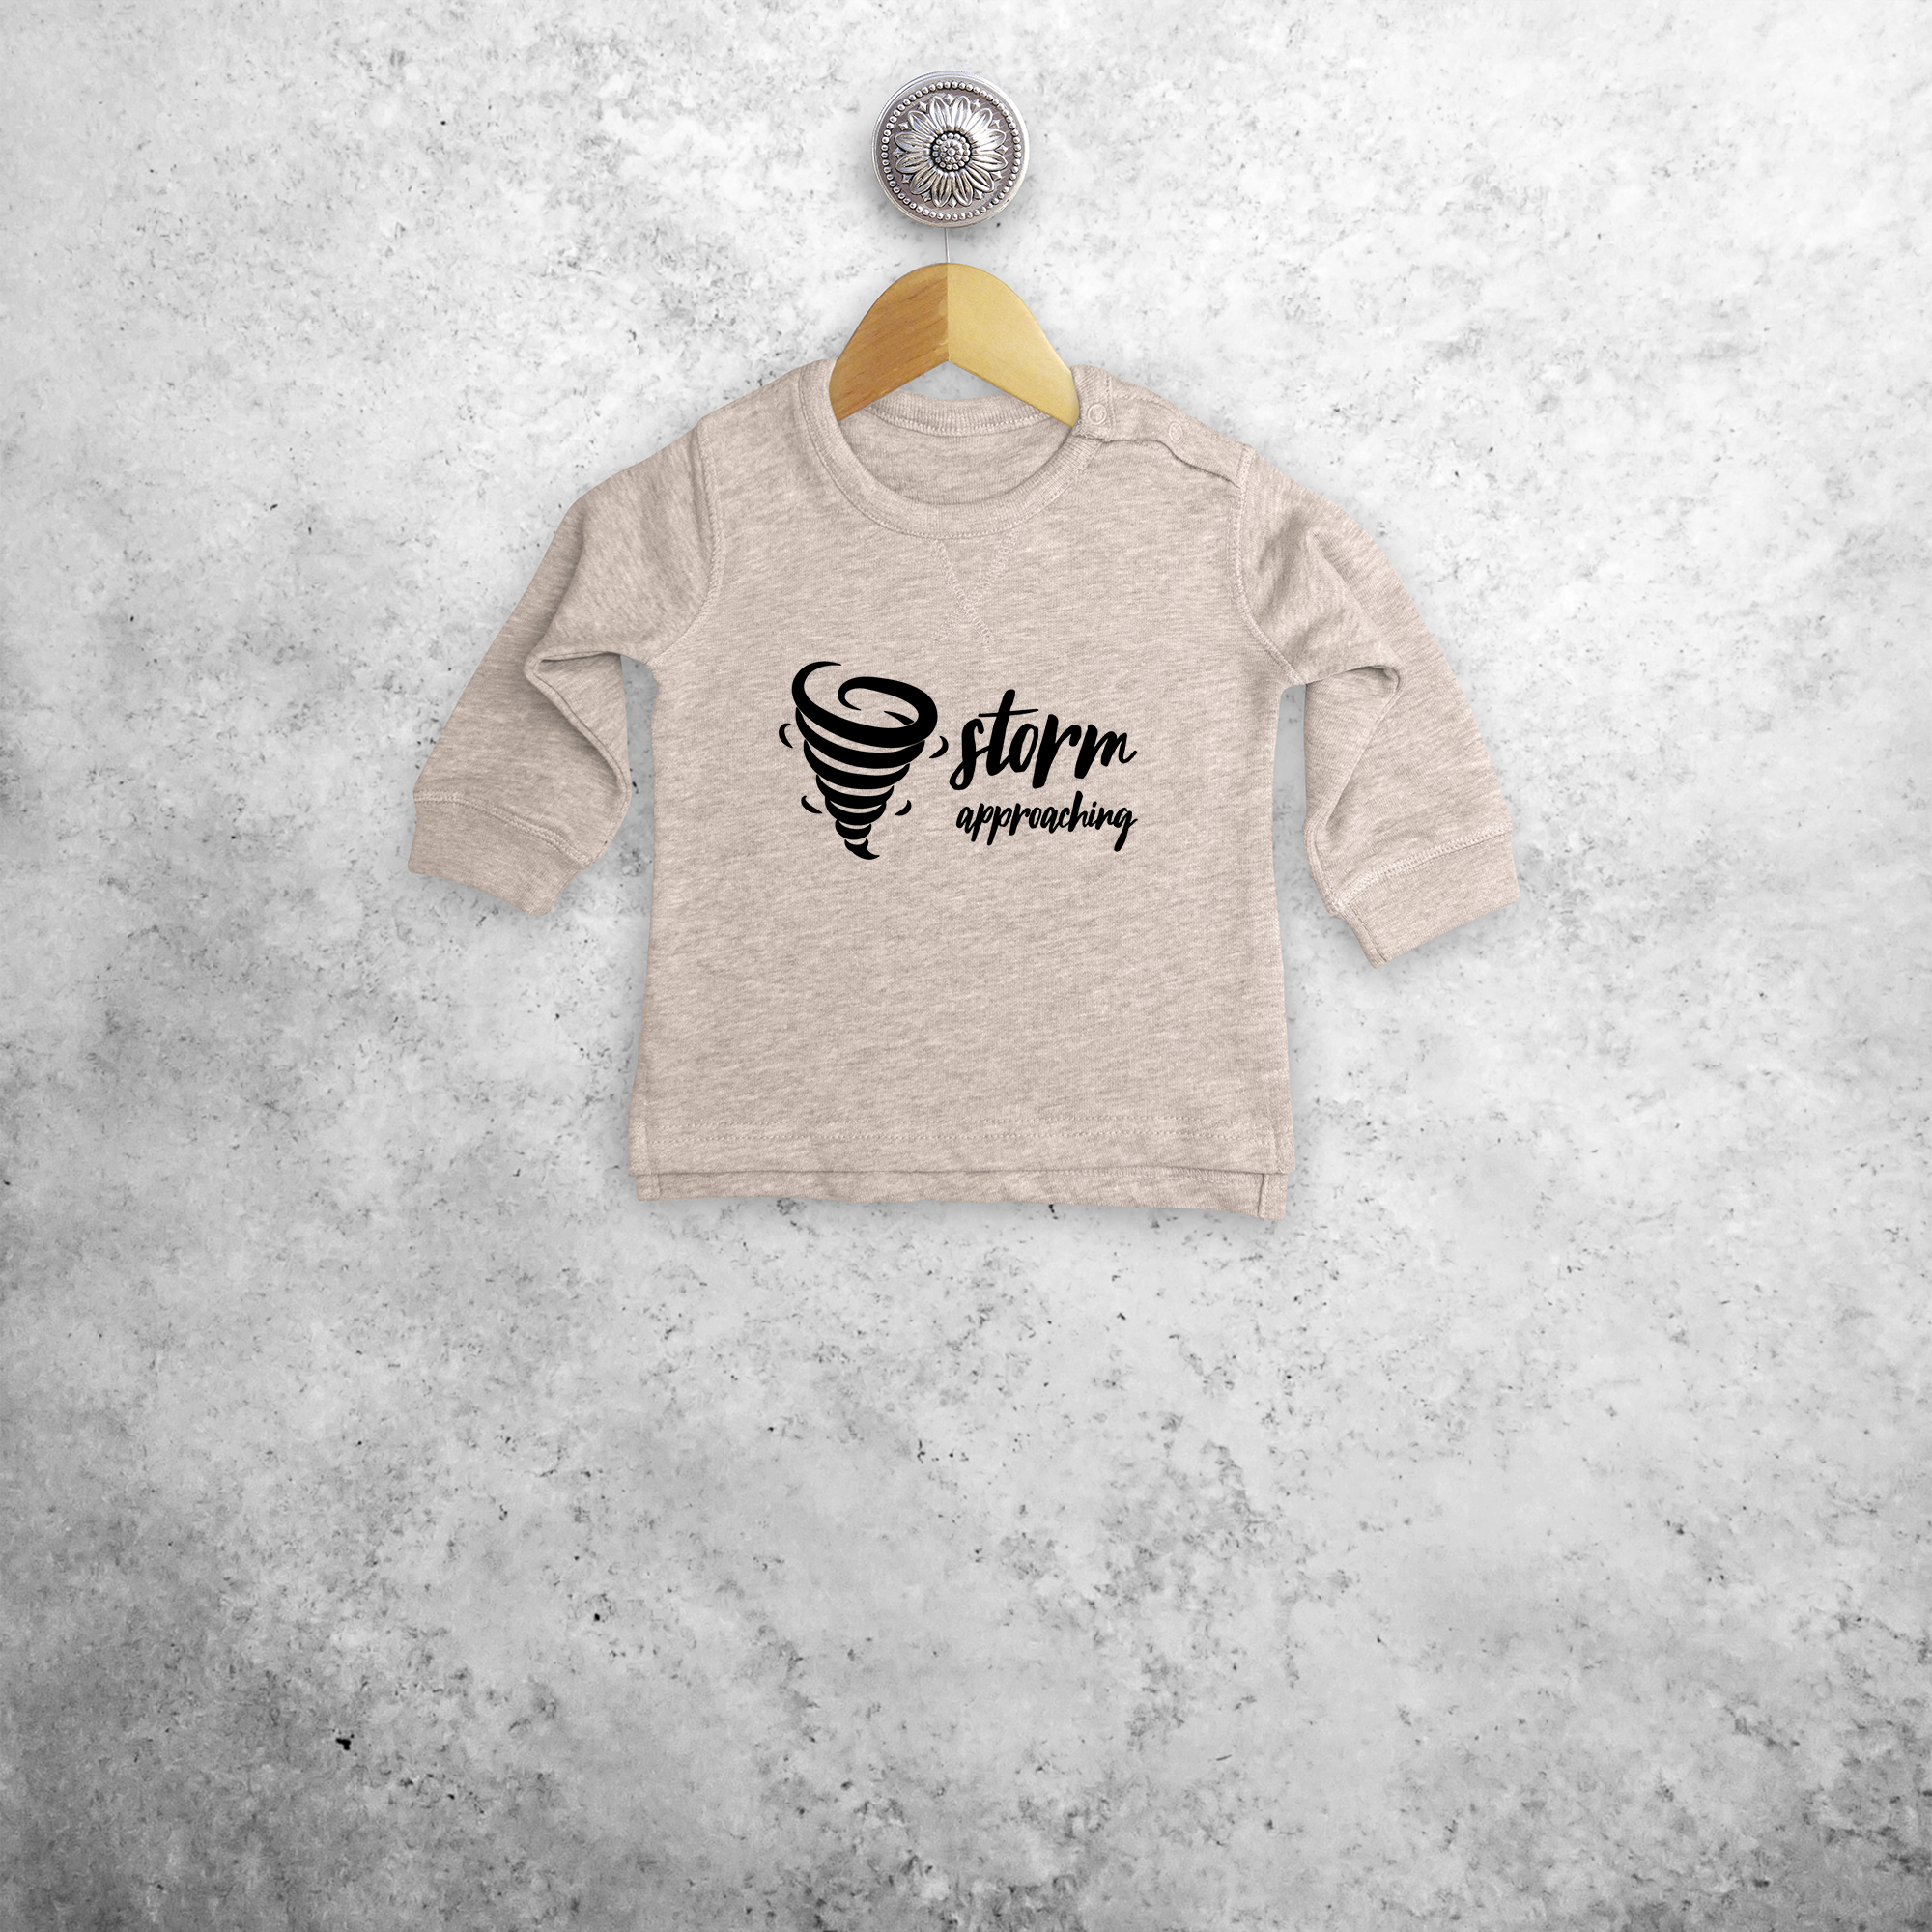 'Storm approaching' baby sweater